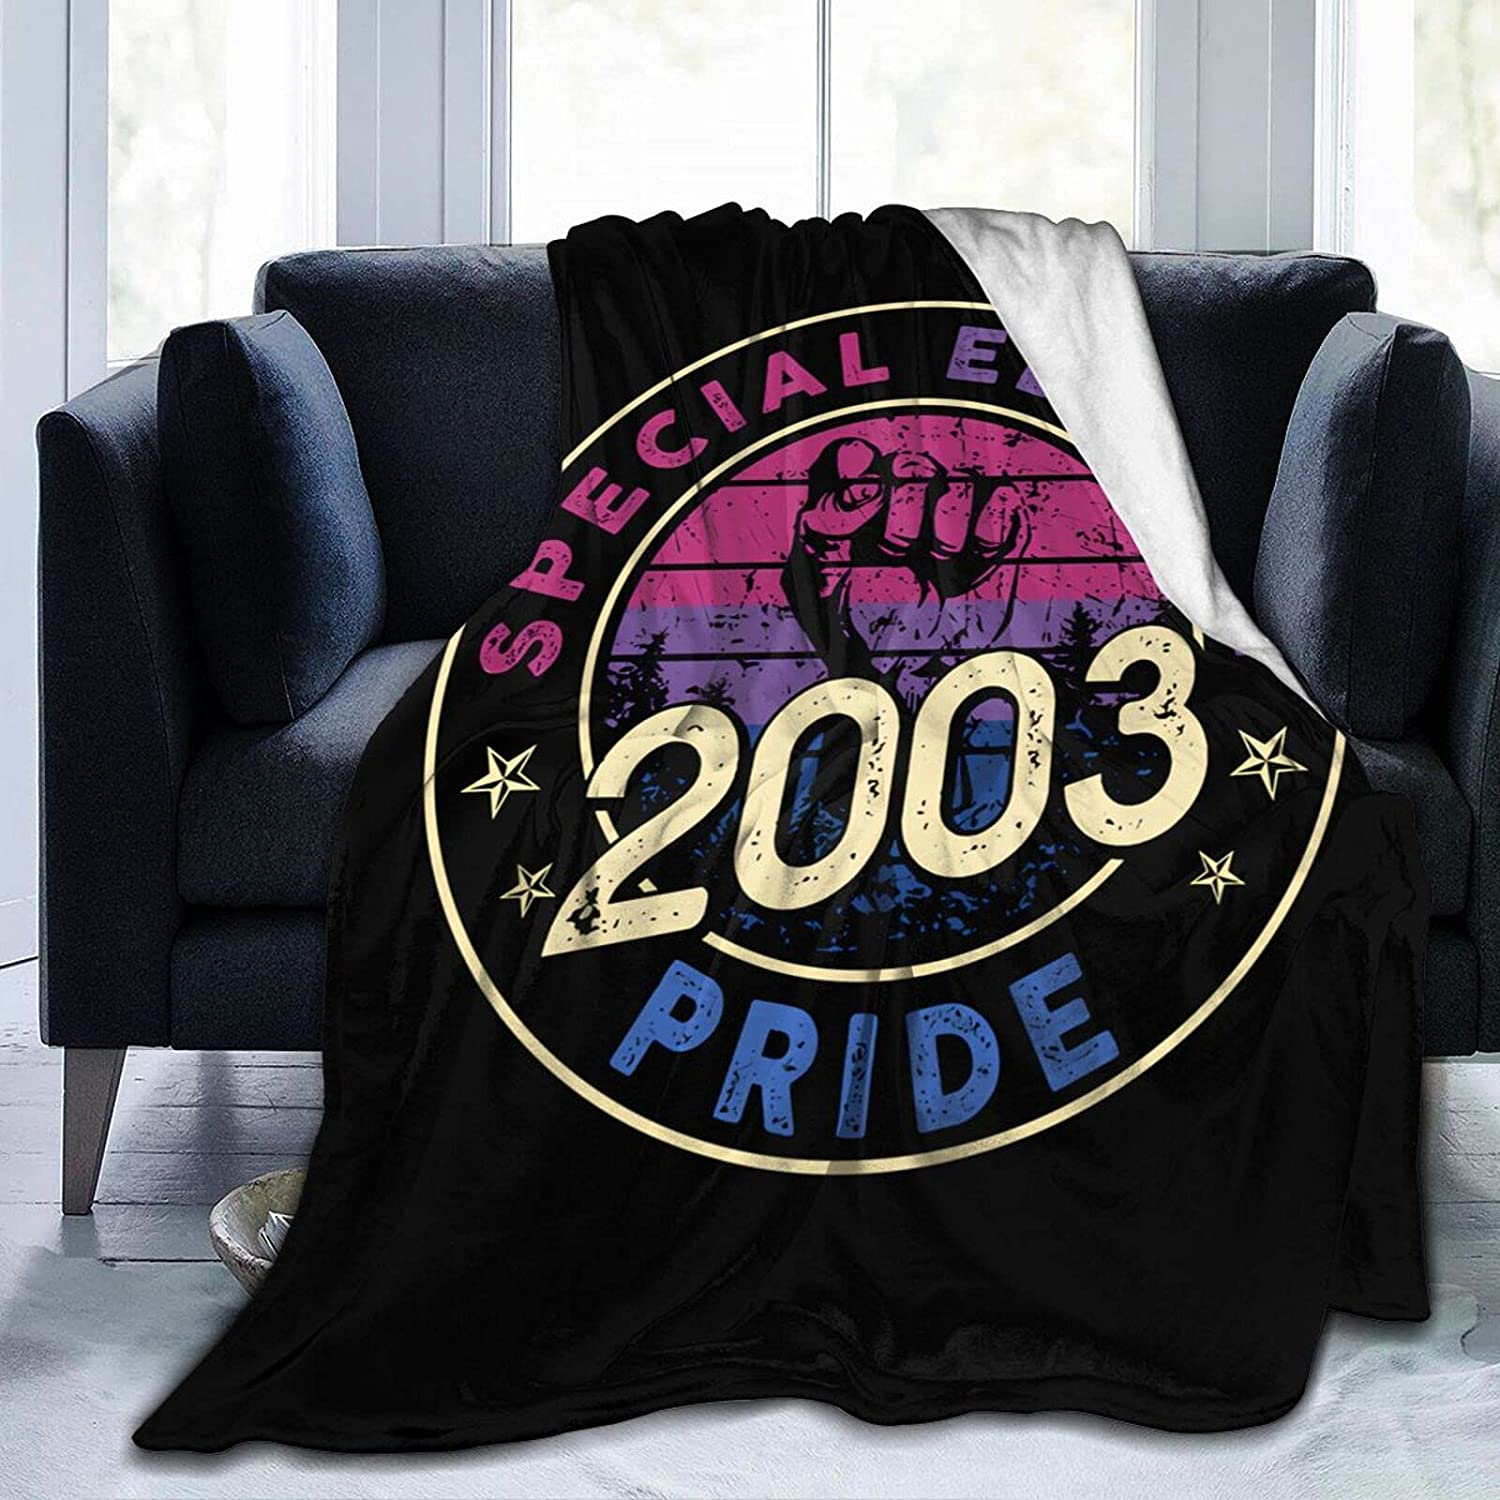 2003 Fixed price Recommended for sale Birthday Ultra-Soft Micro Fleece Coz Throw Blankets Bed